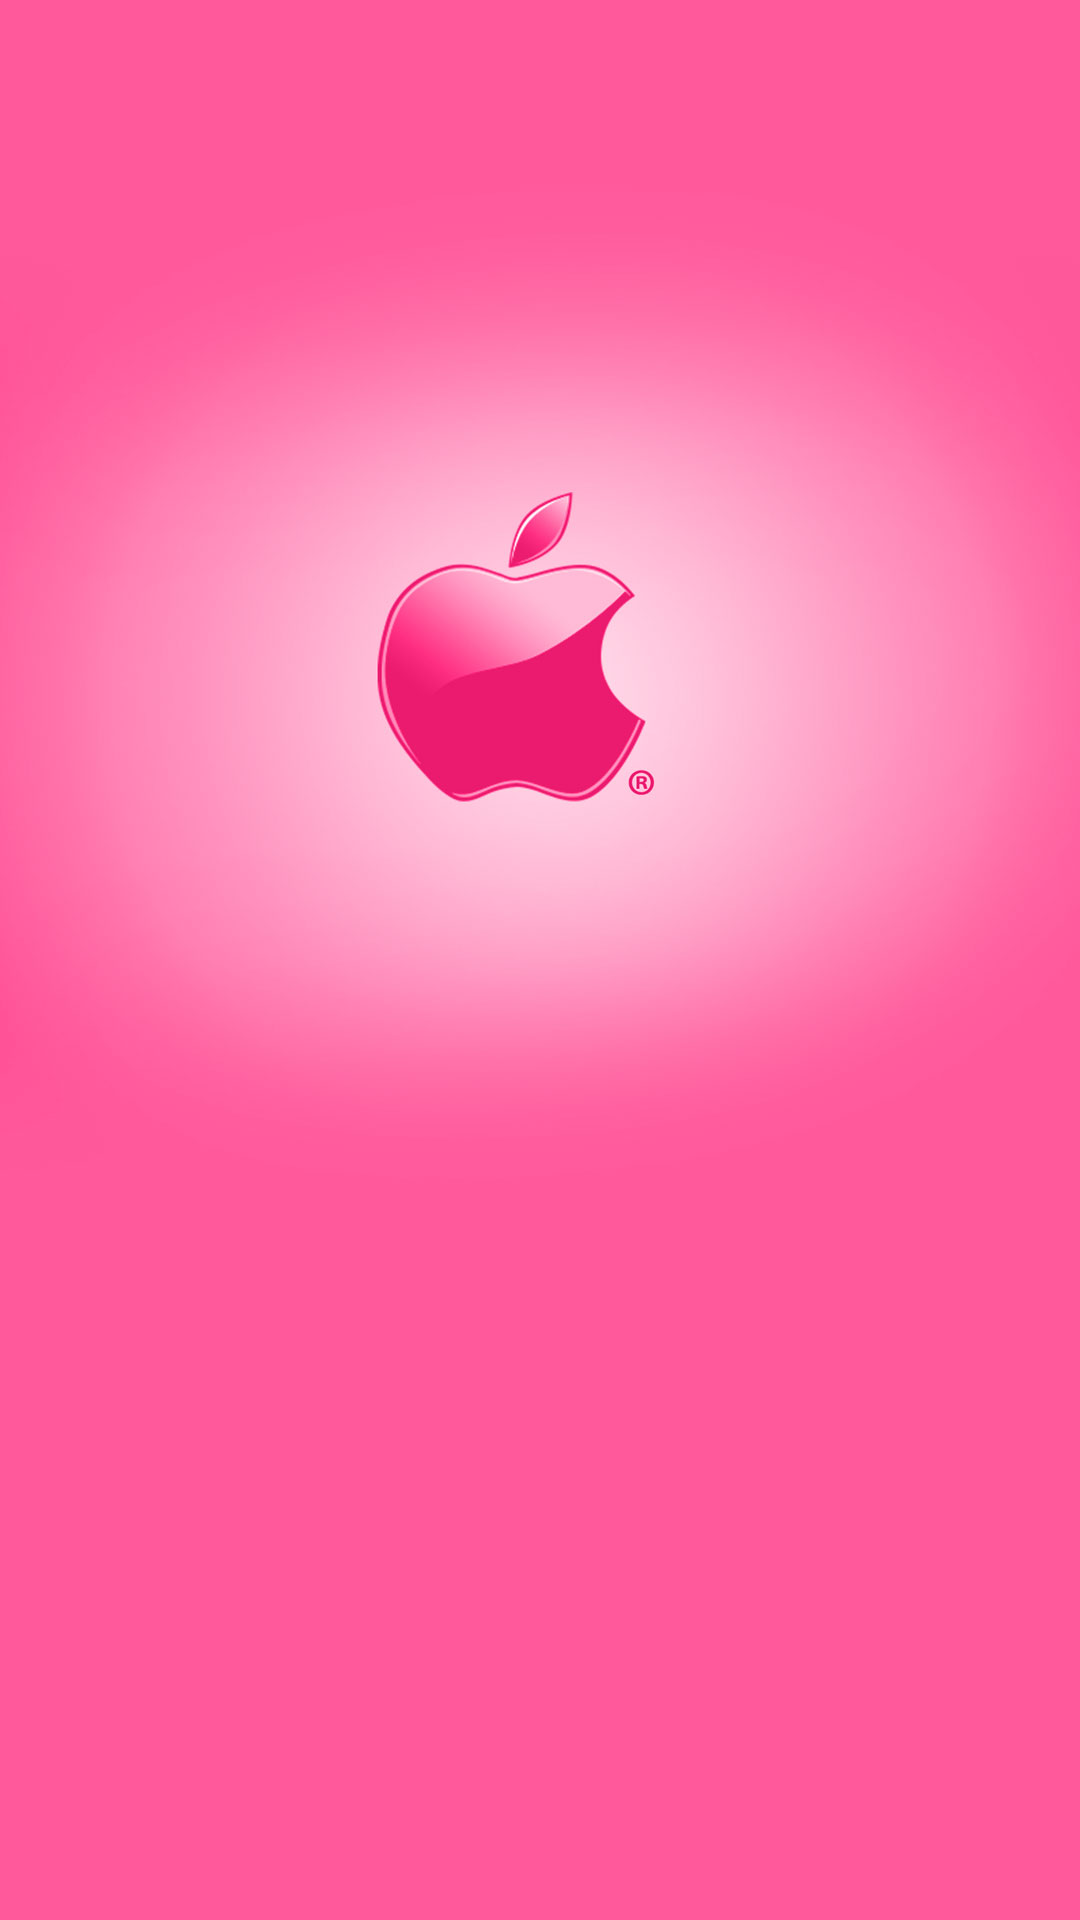 Pink iPhone 6 Plus wallpaper for girls 25 Best Cool iPhone 6 Plus 1080x1920